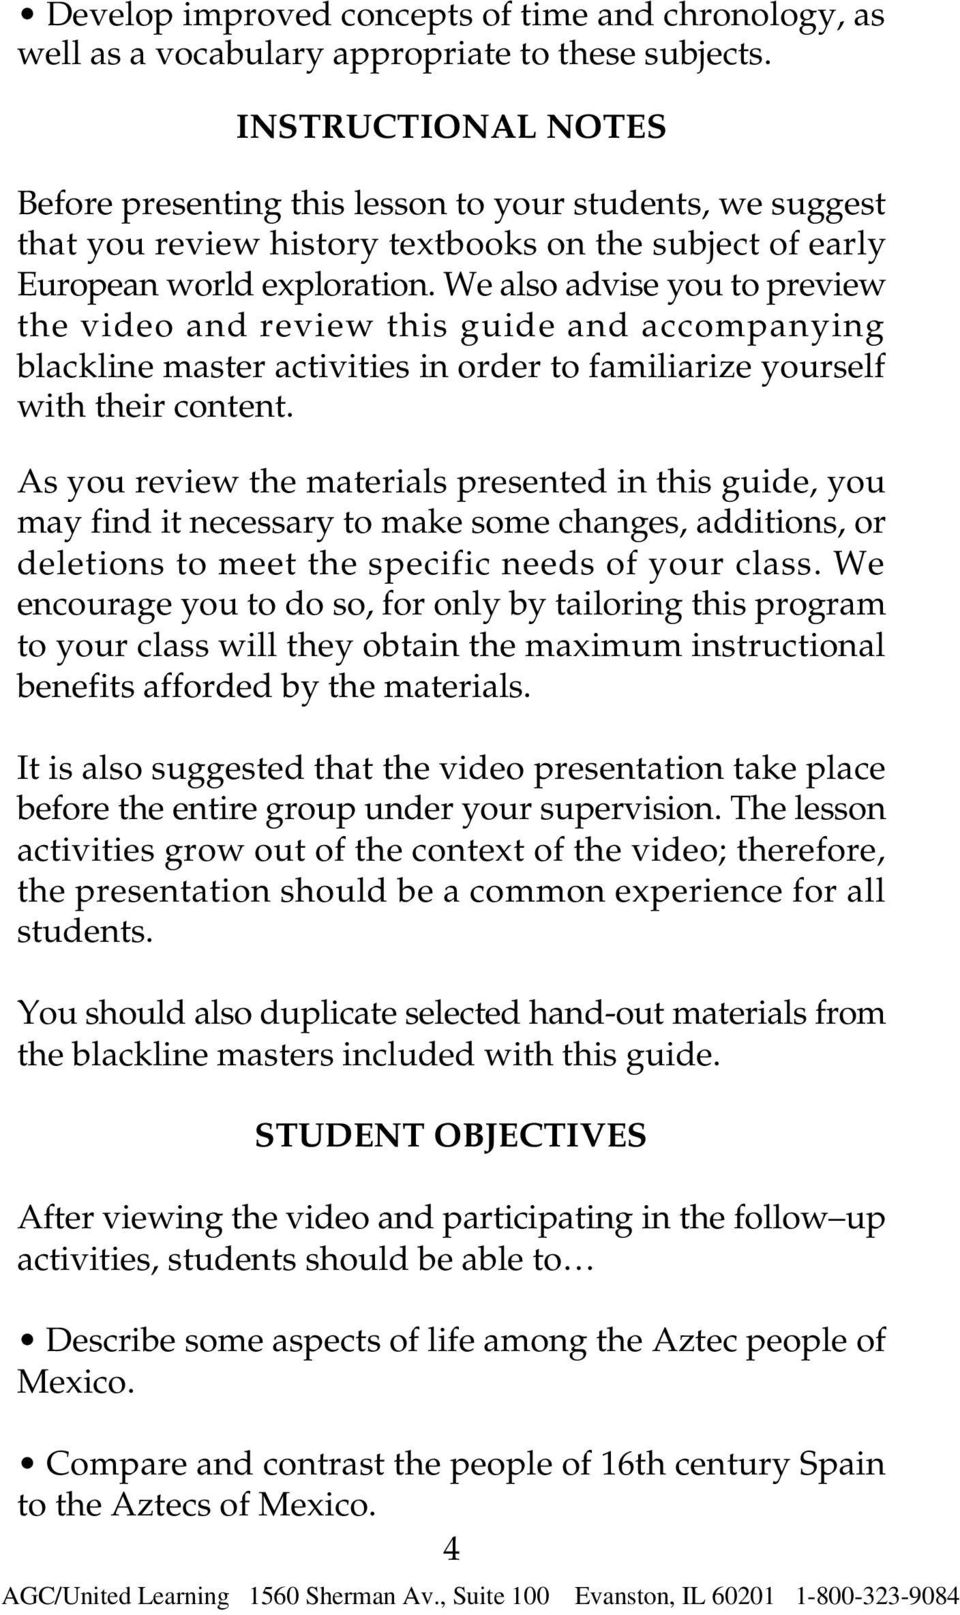 We also advise you to preview the video and review this guide and accompanying blackline master activities in order to familiarize yourself with their content.